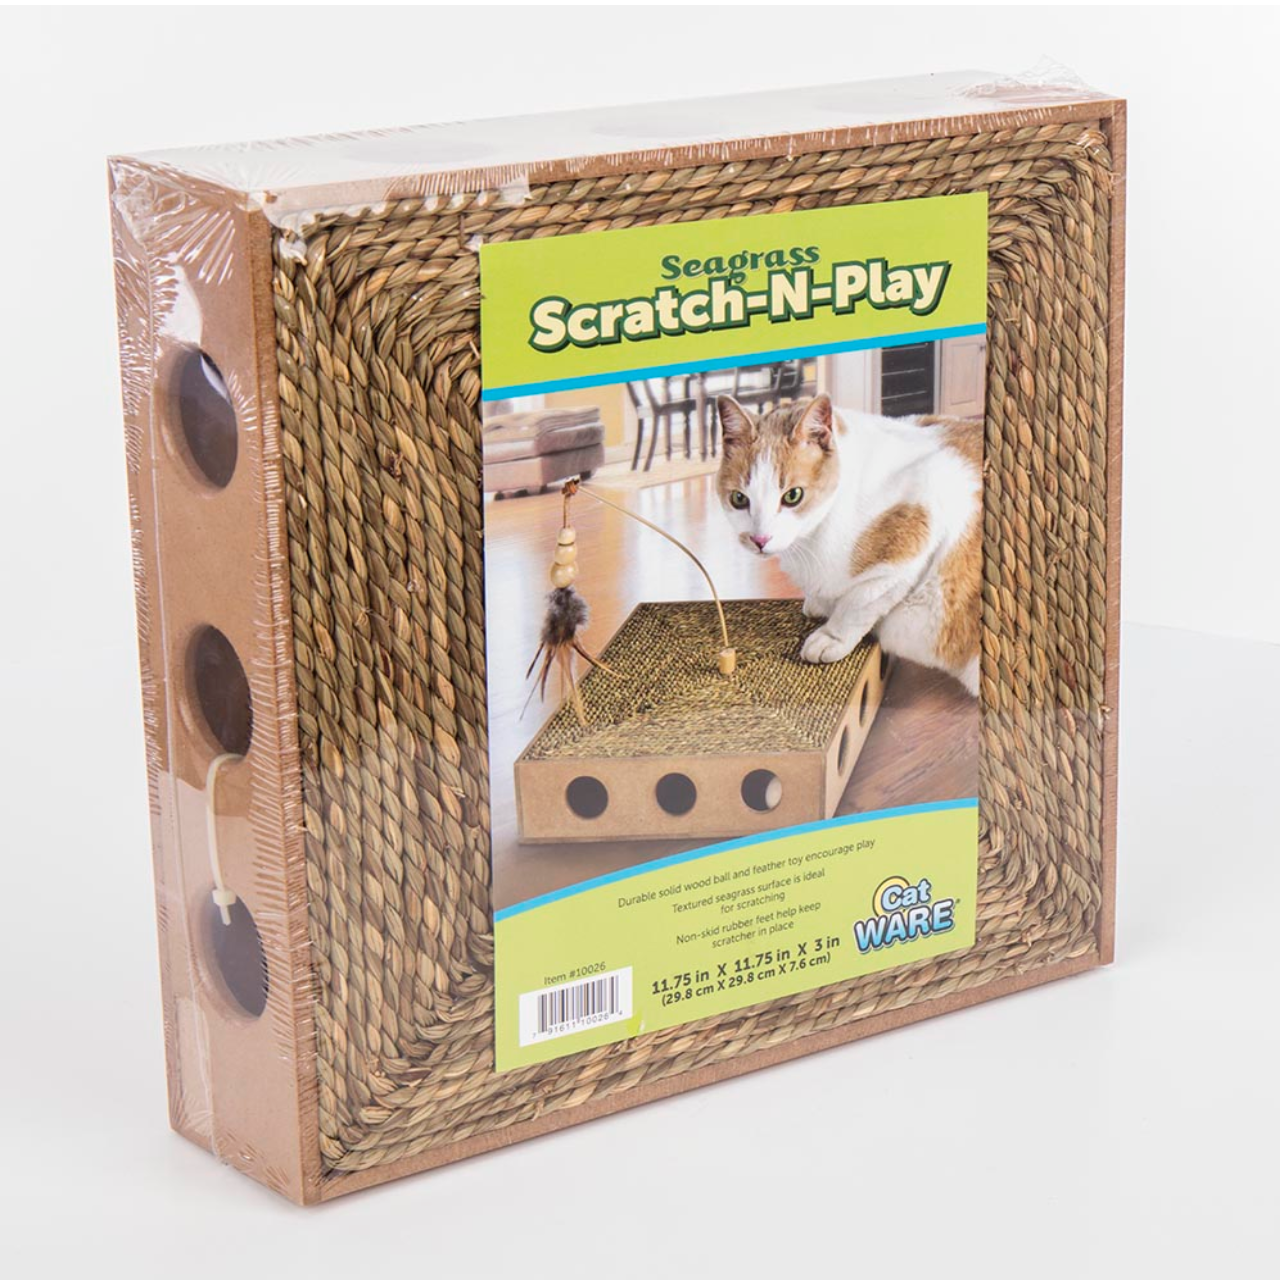 WARE SEAGRASS SCRATCH N PLAY        8